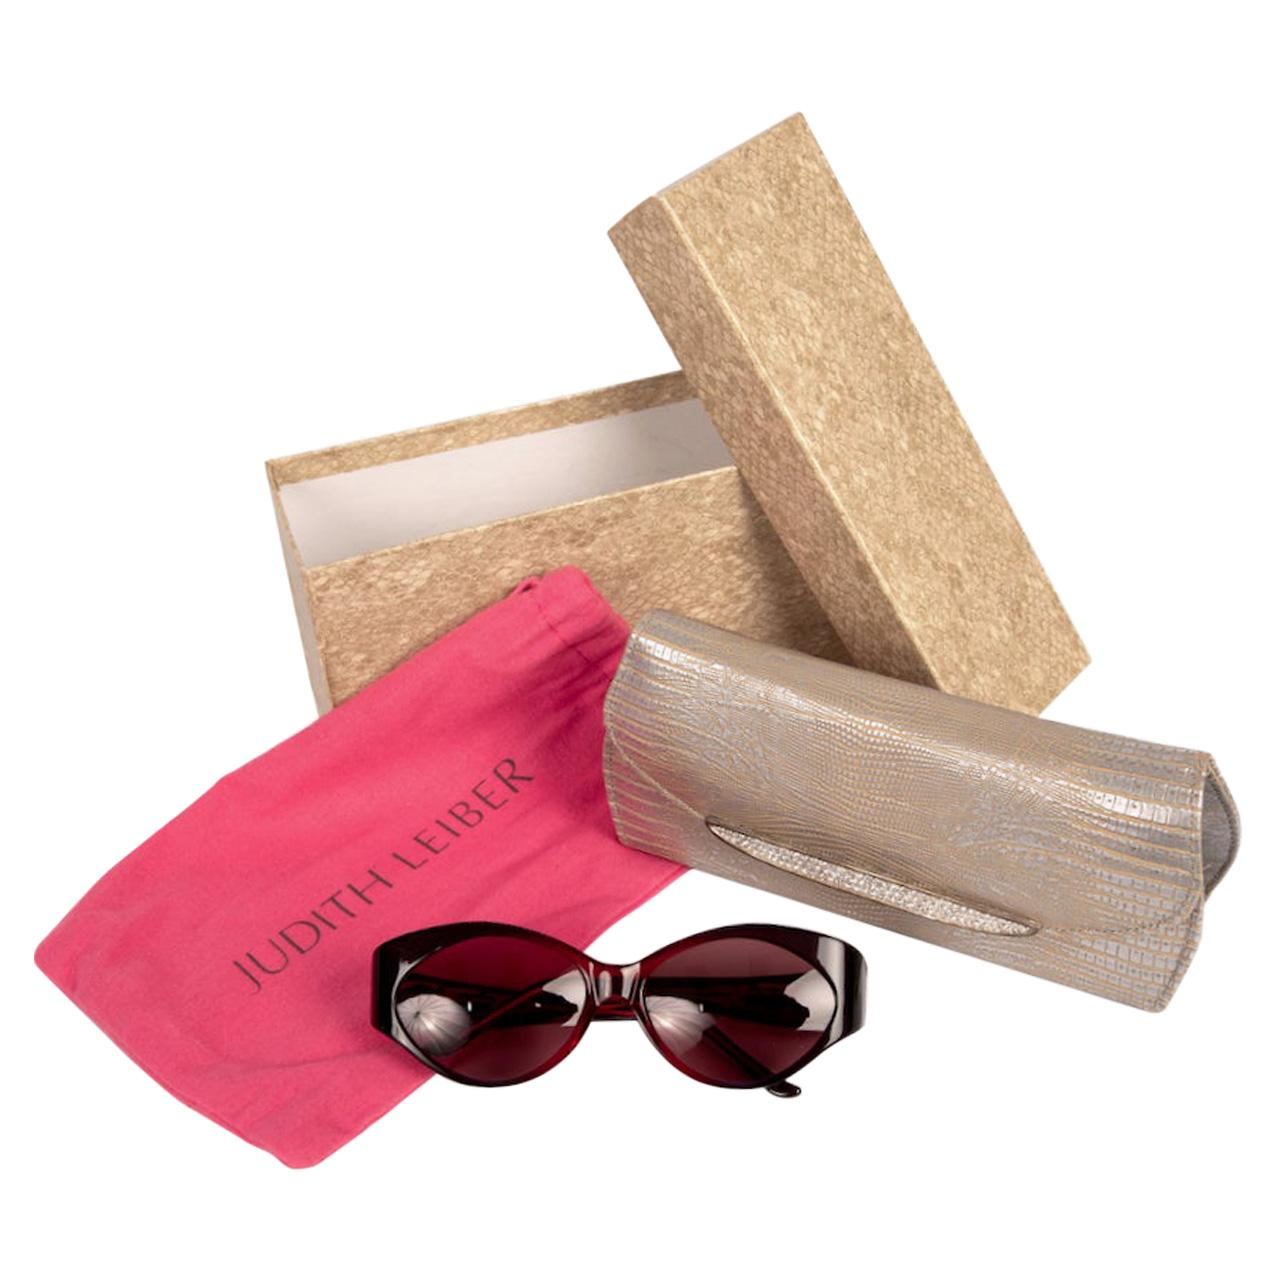 Judith Leiber Couture Jeweled 'Bluebell' Crimson & Blue Sunglasses with Case